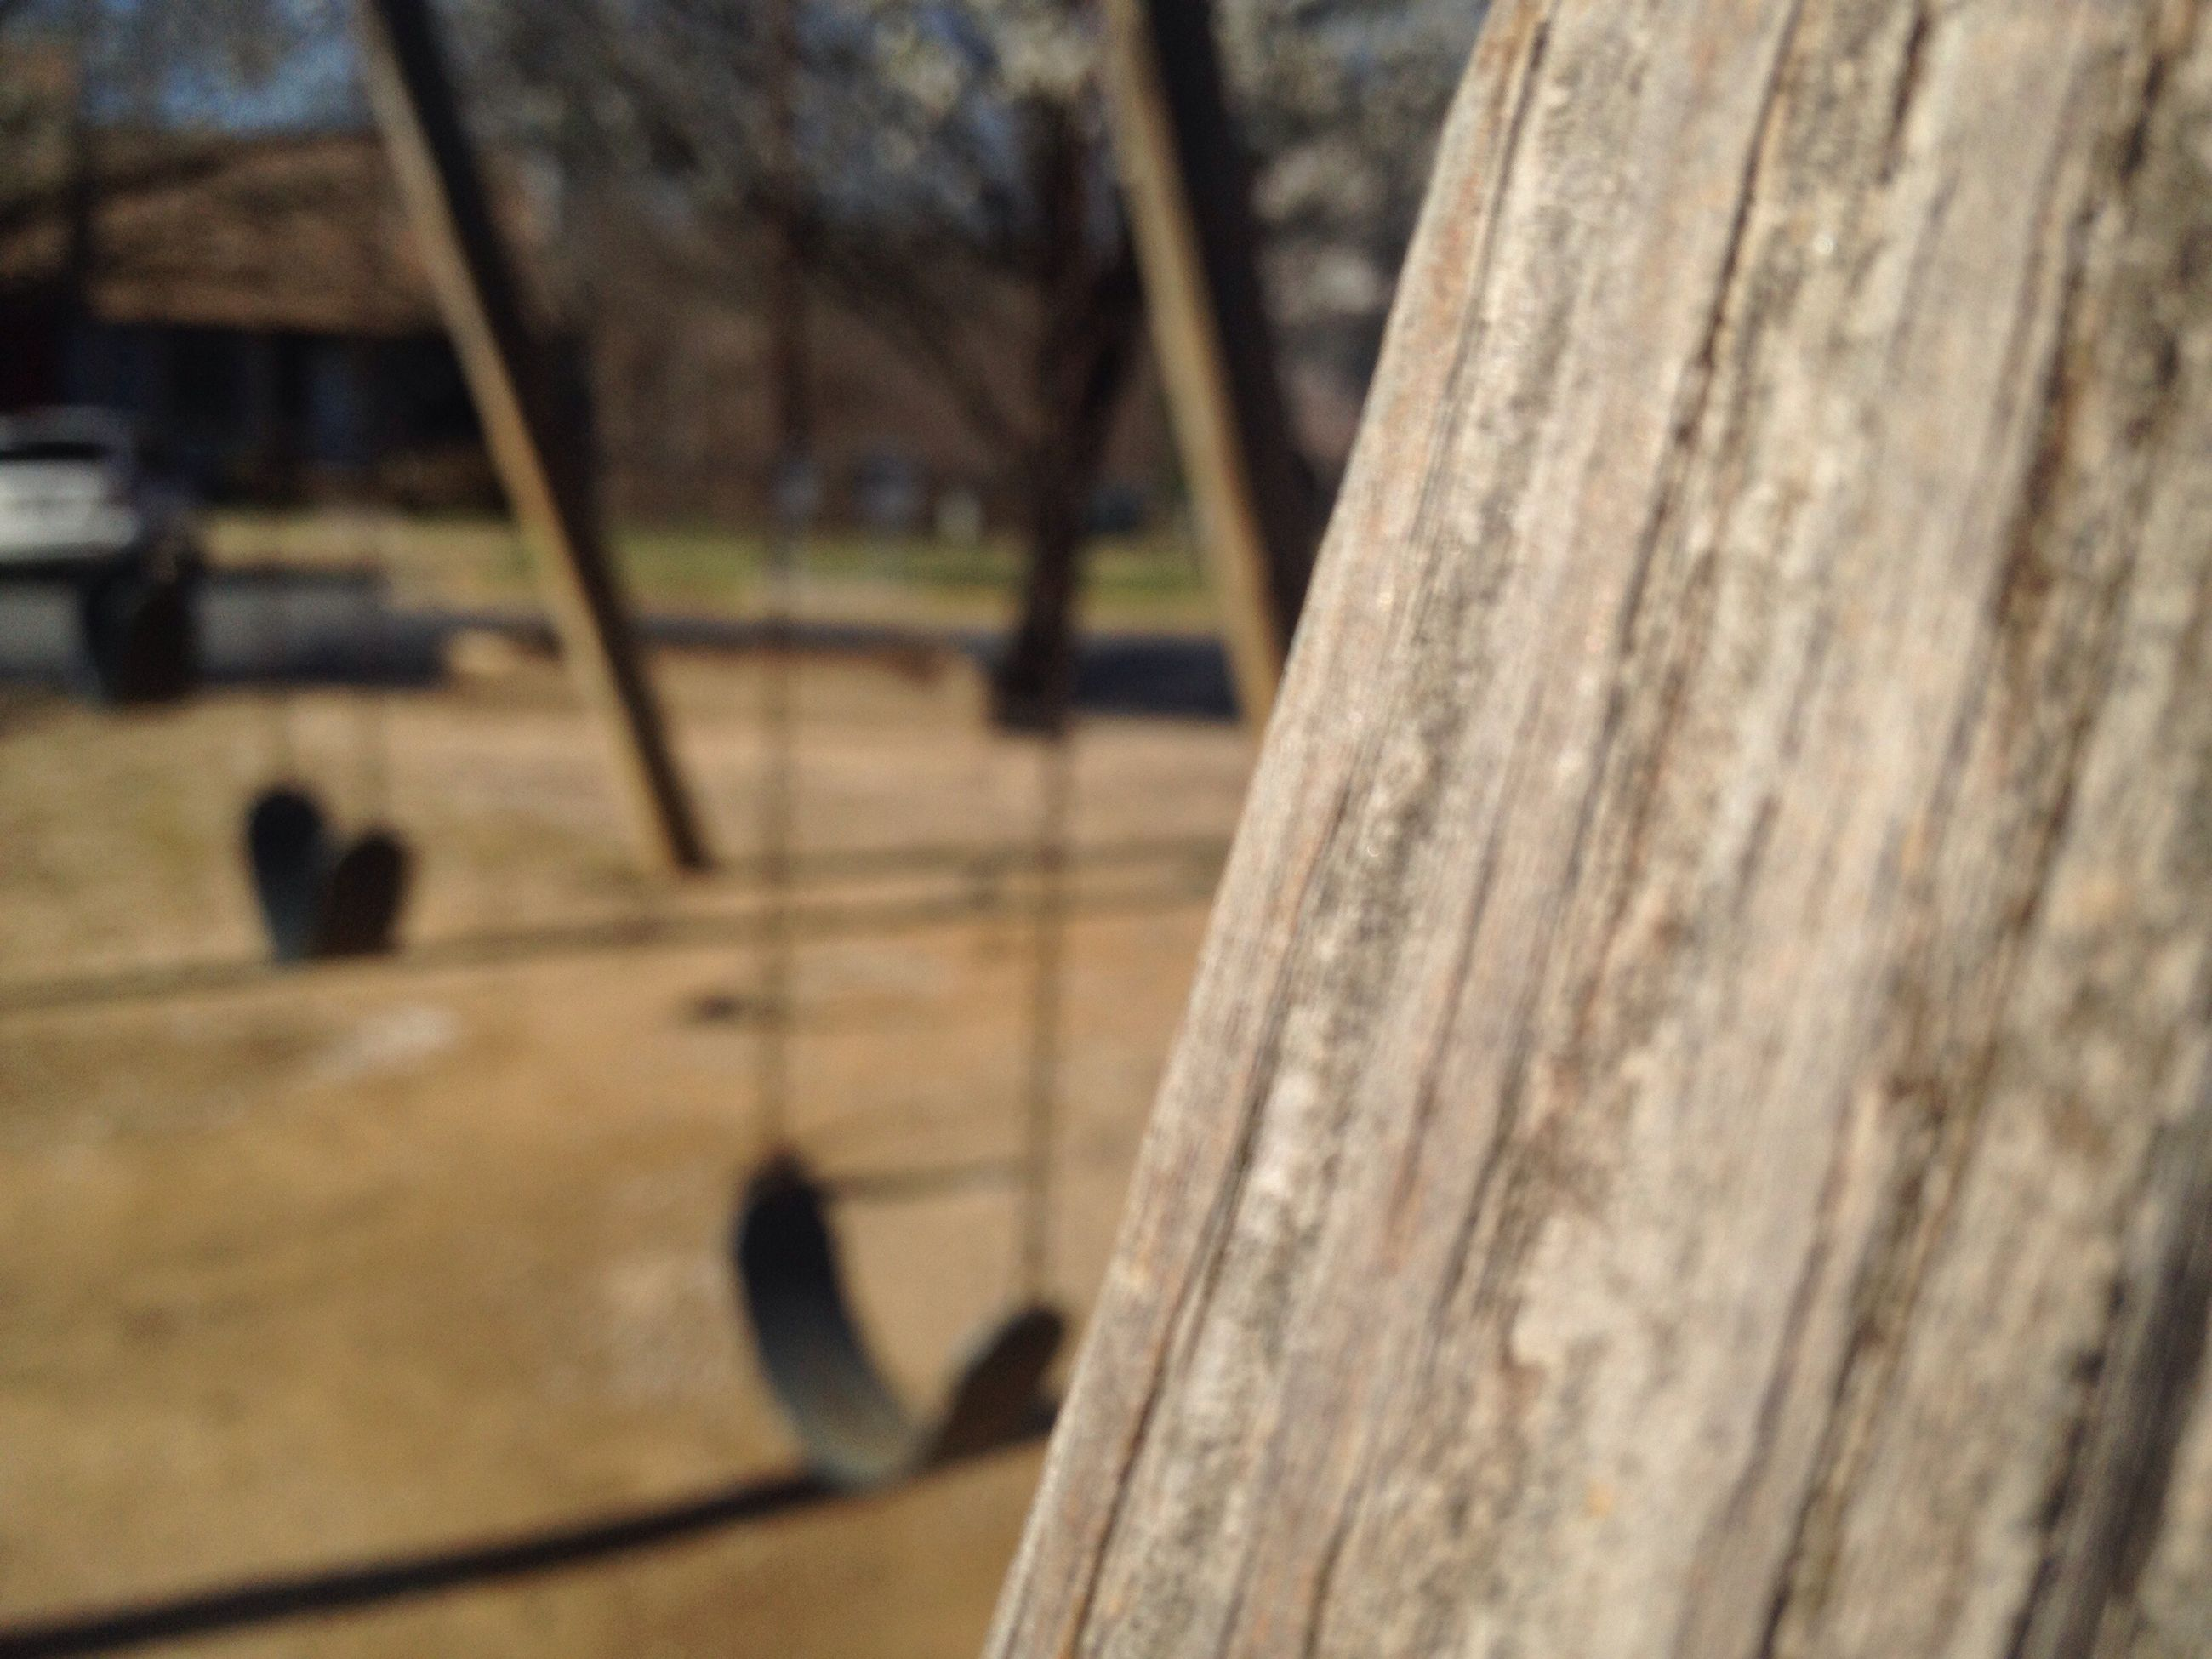 wood - material, focus on foreground, no people, close-up, nature, day, outdoors